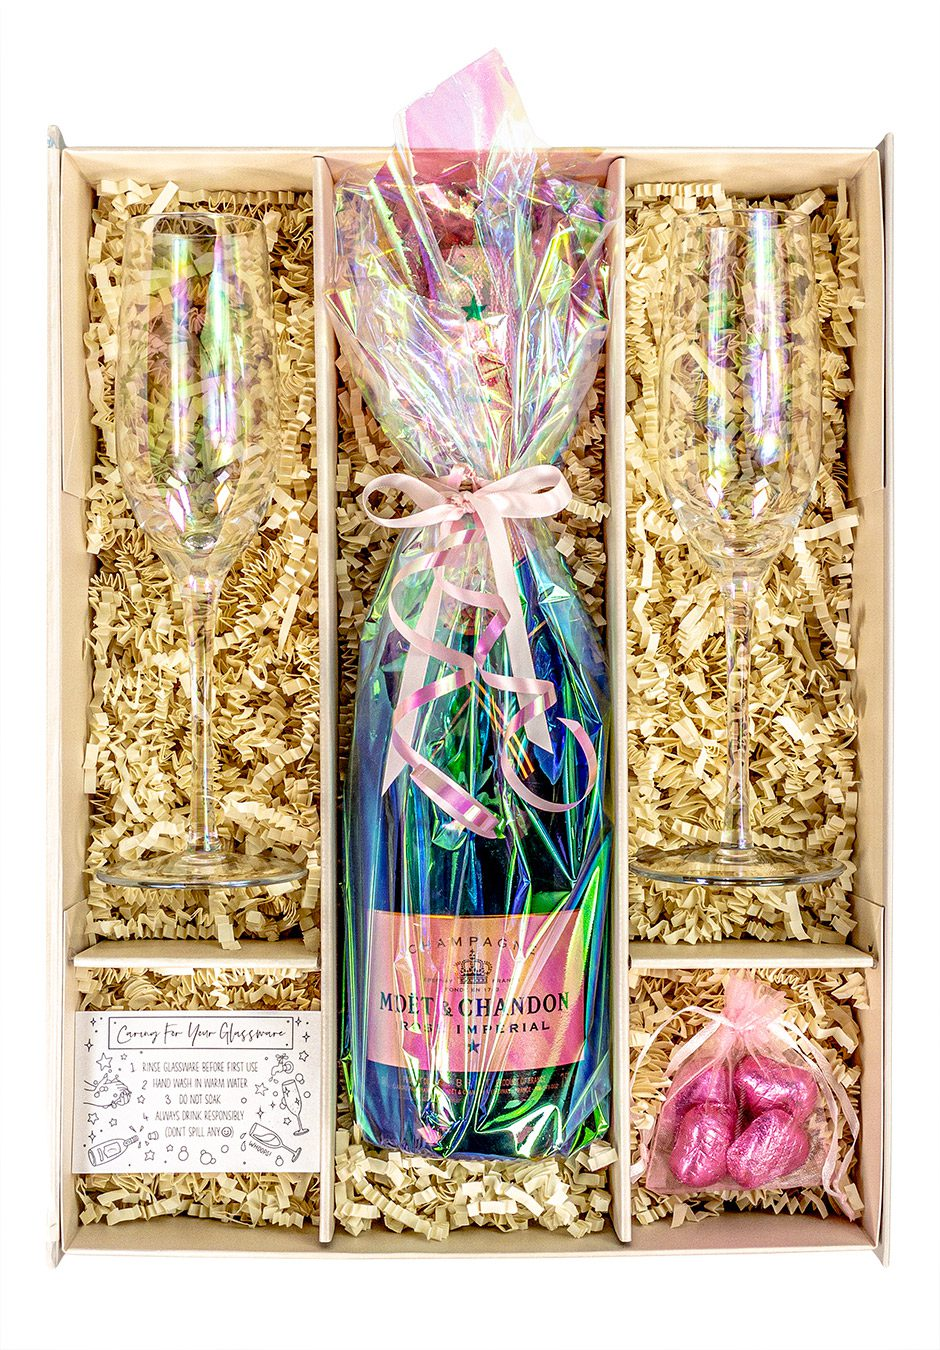 Moet and Chandon Rosé Imperial   75cl   iridescent   Lustre   Sparkleware Gift Set   Keico Drinks